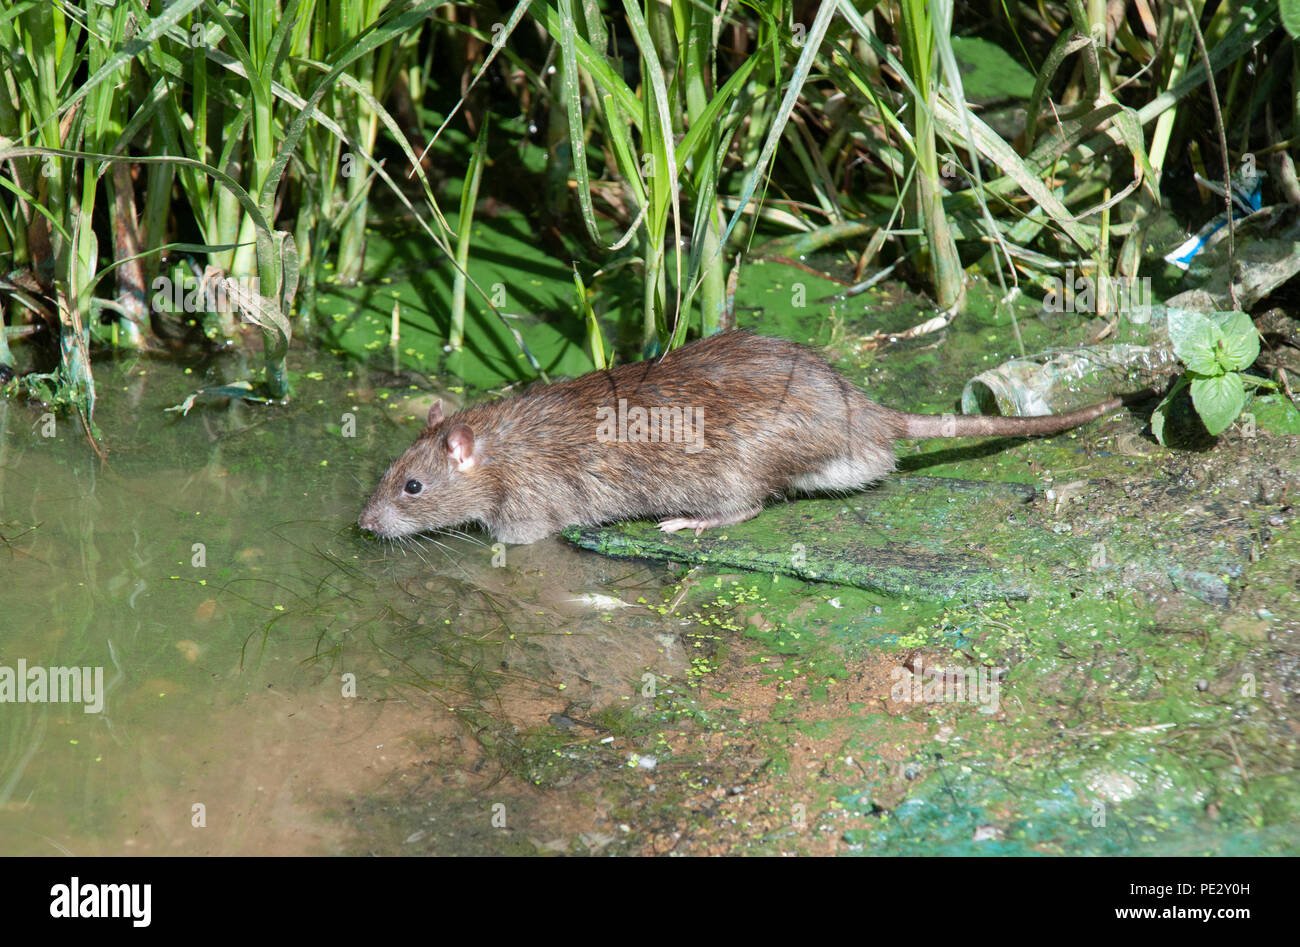 Brown Rat, (Rattus norvegicus), Brent River, near Brent Reservoir, also known as Welsh Harp Reservoir, Brent, London, United Kingdom - Stock Image